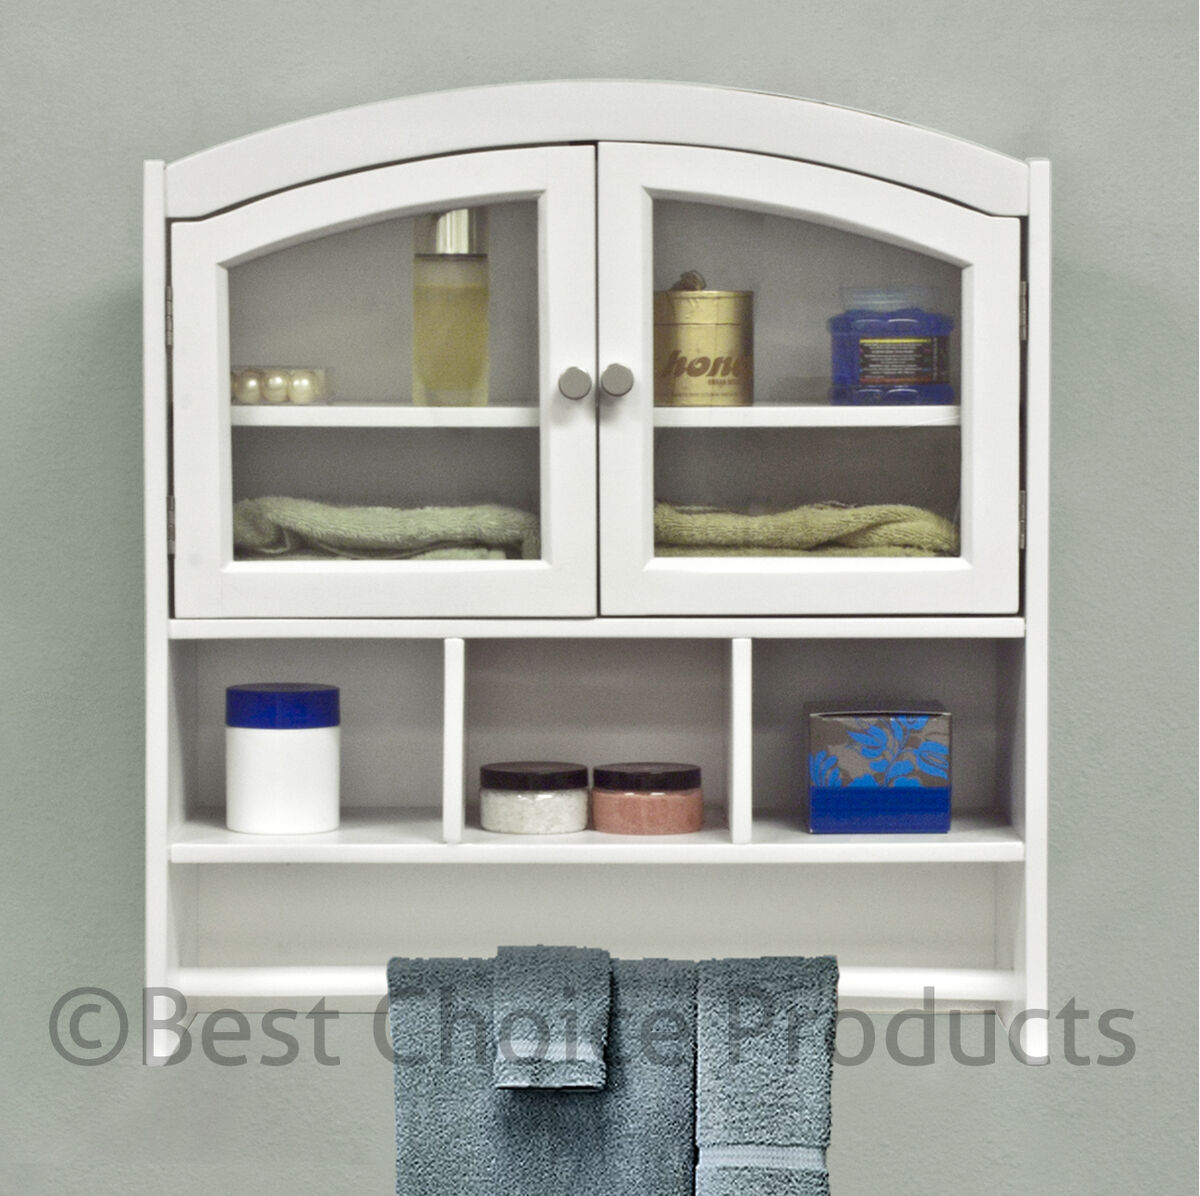 Wonderful Neal Wall Mount Cabinet W 2 Doors For Bathroom Storage White Or